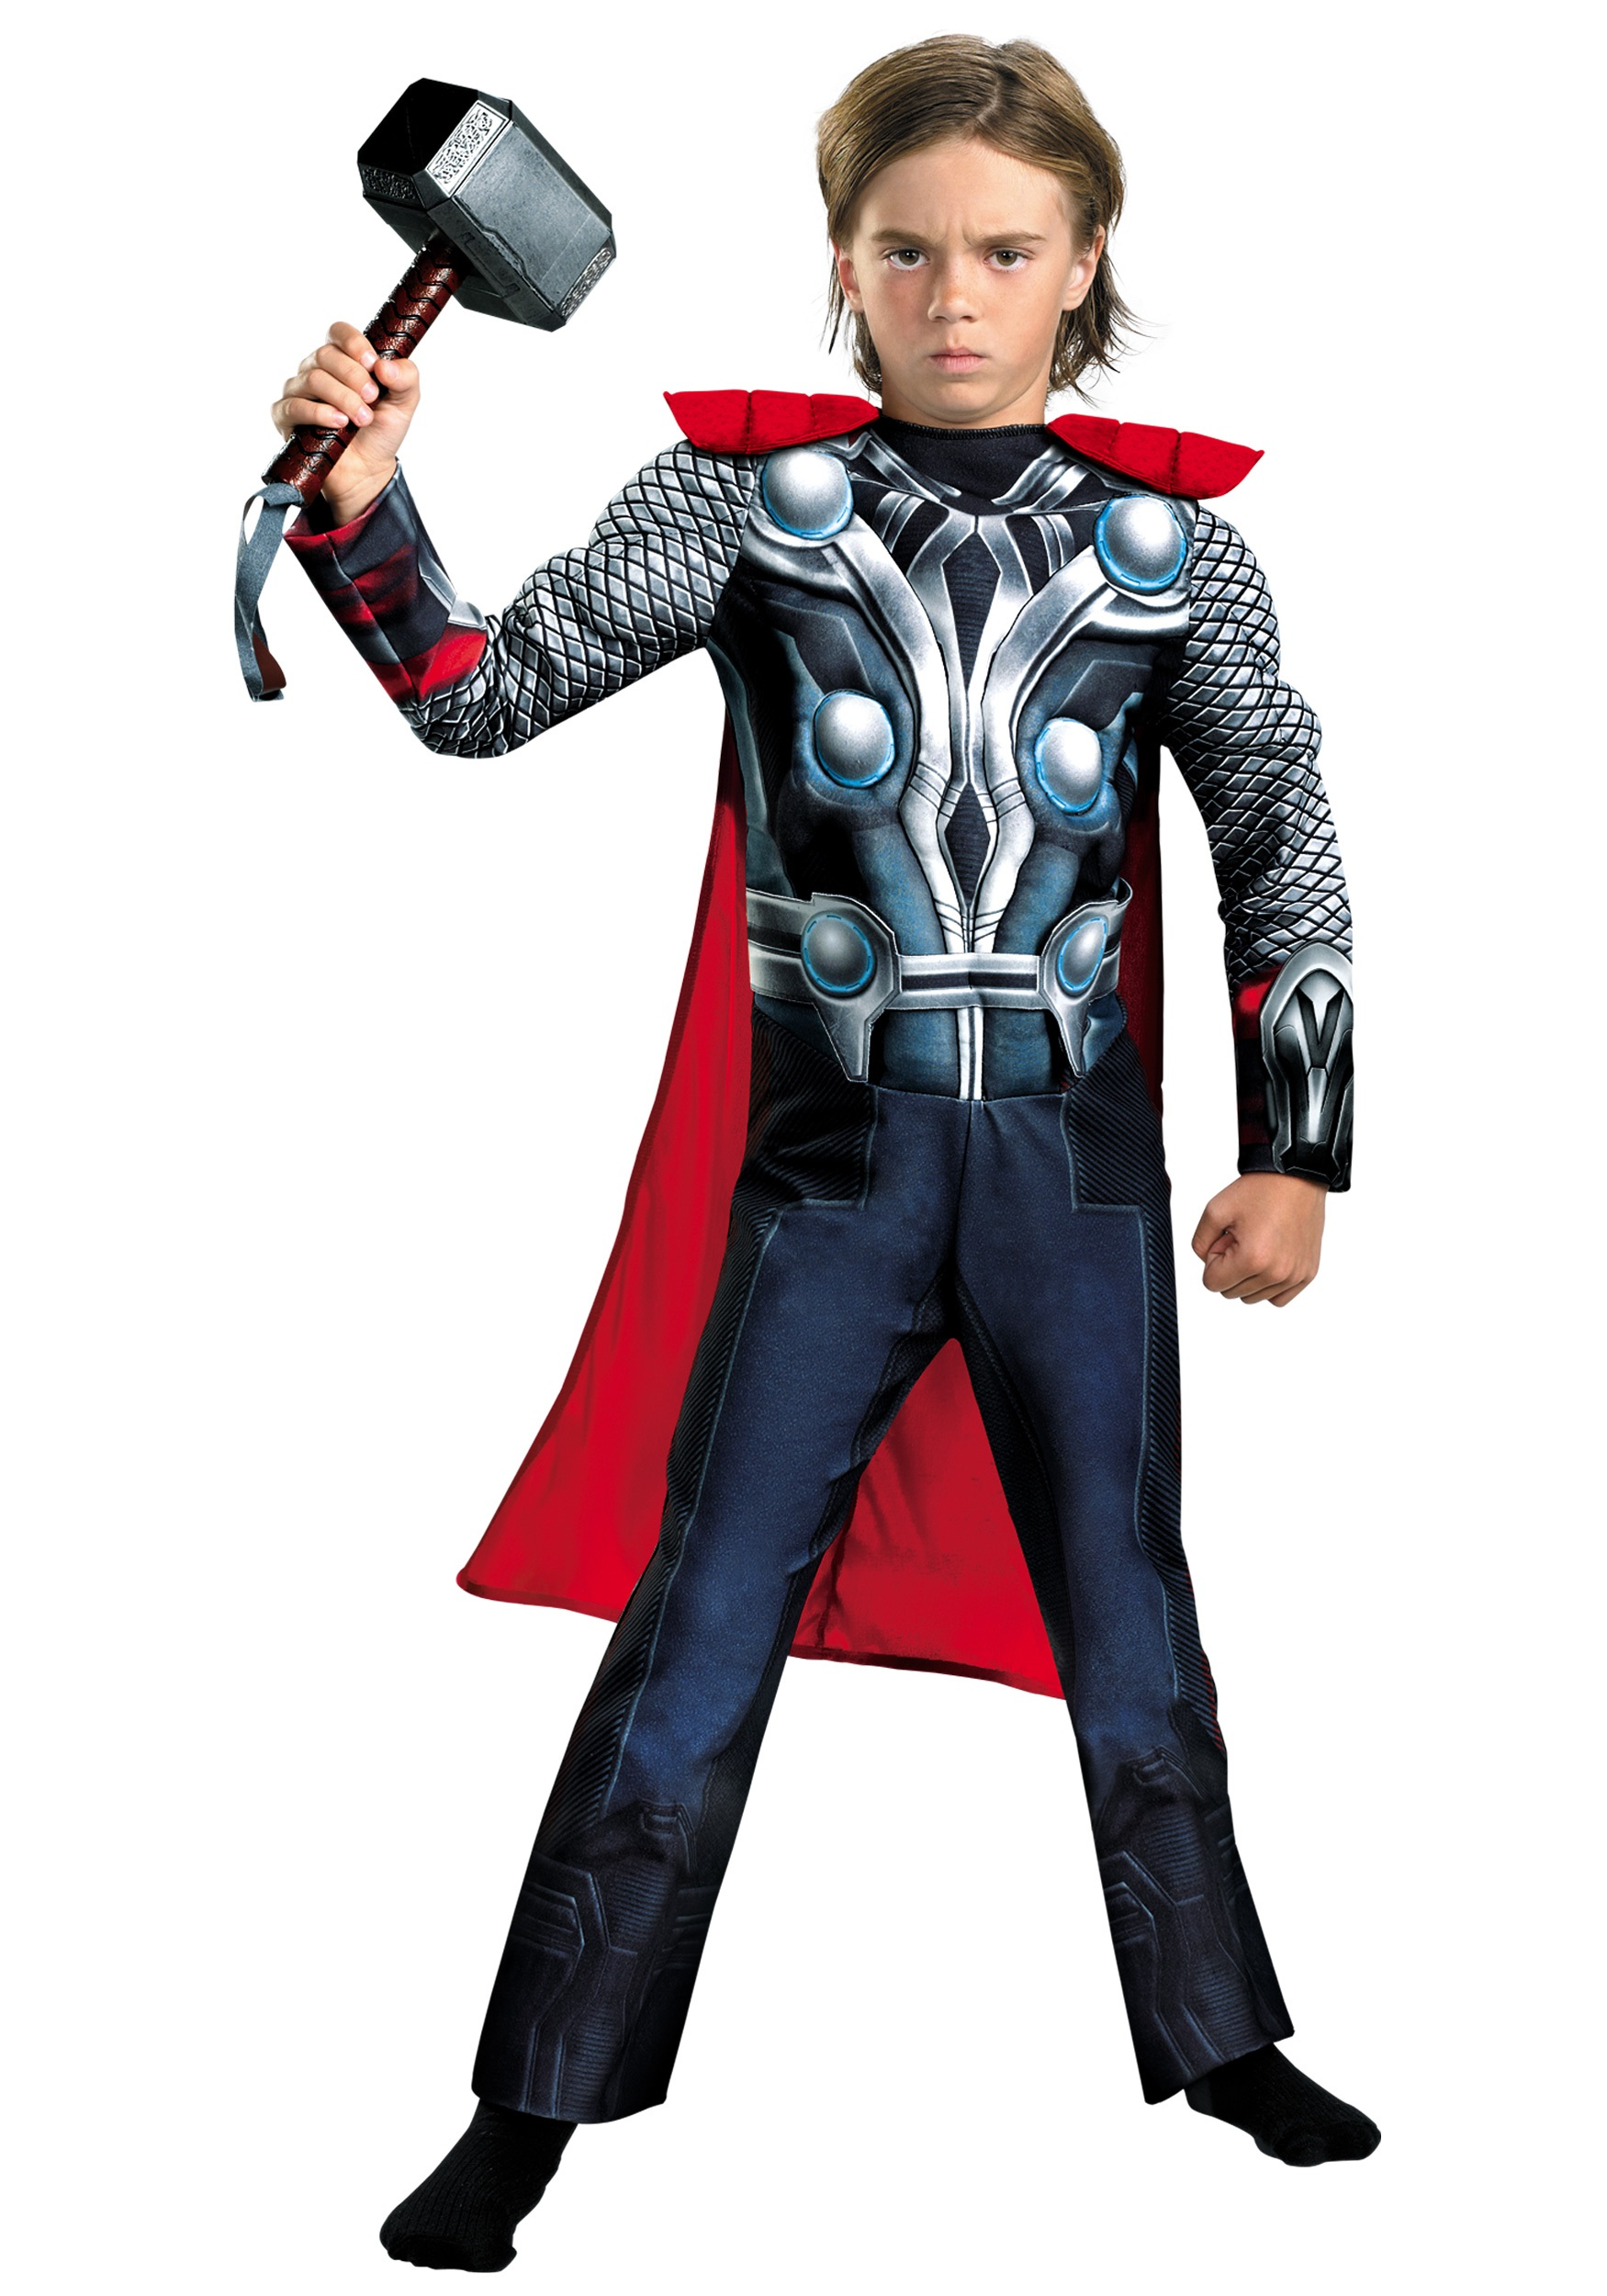 Child Avengers Thor Muscle Costume  sc 1 st  Halloween Costumes & Child Avengers Thor Muscle Costume - Halloween Costumes